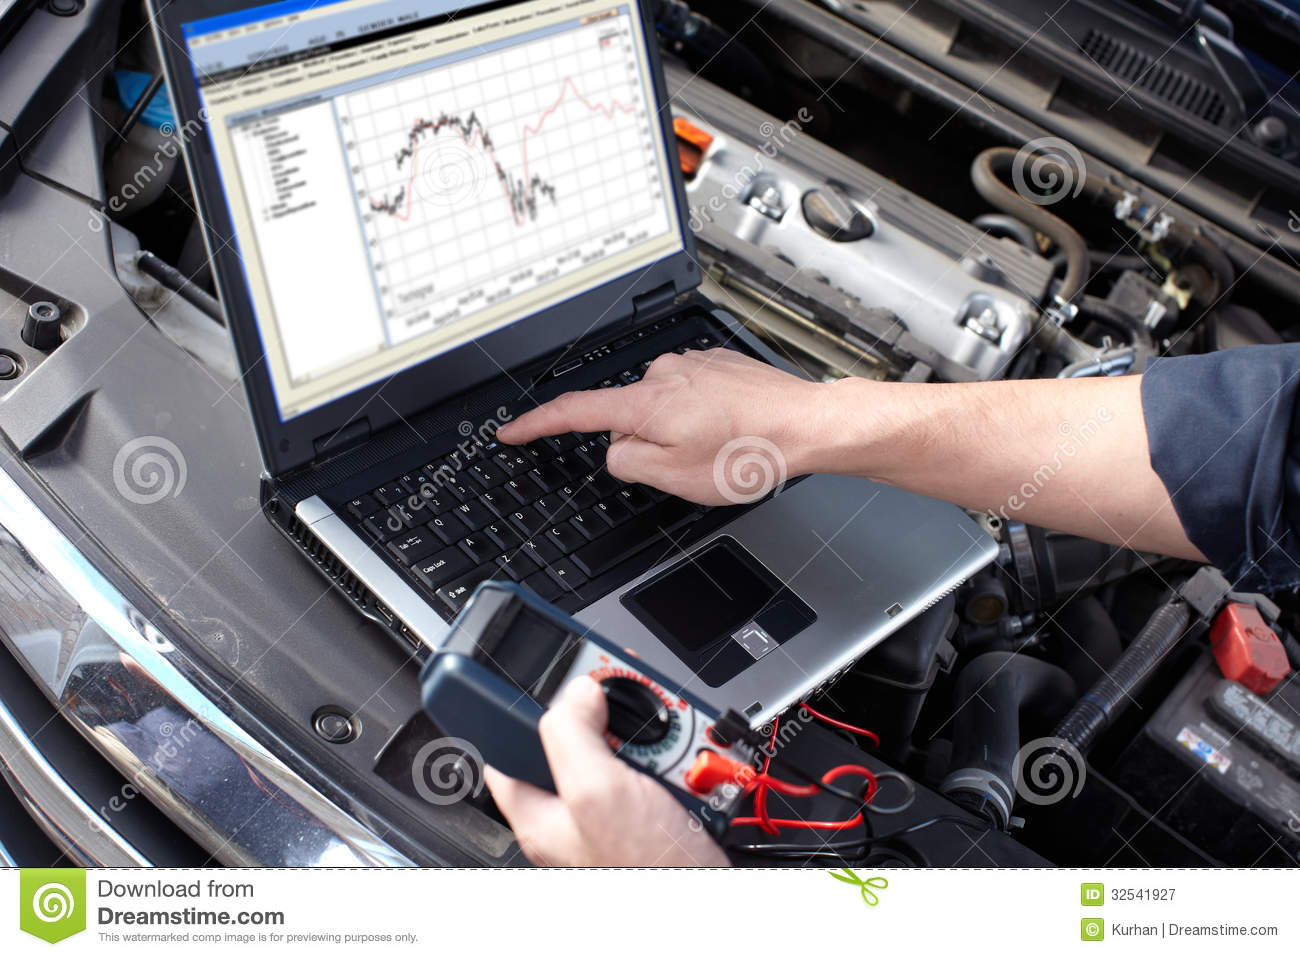 car-mechanic-working-auto-repair-service-professional-32541927.jpg